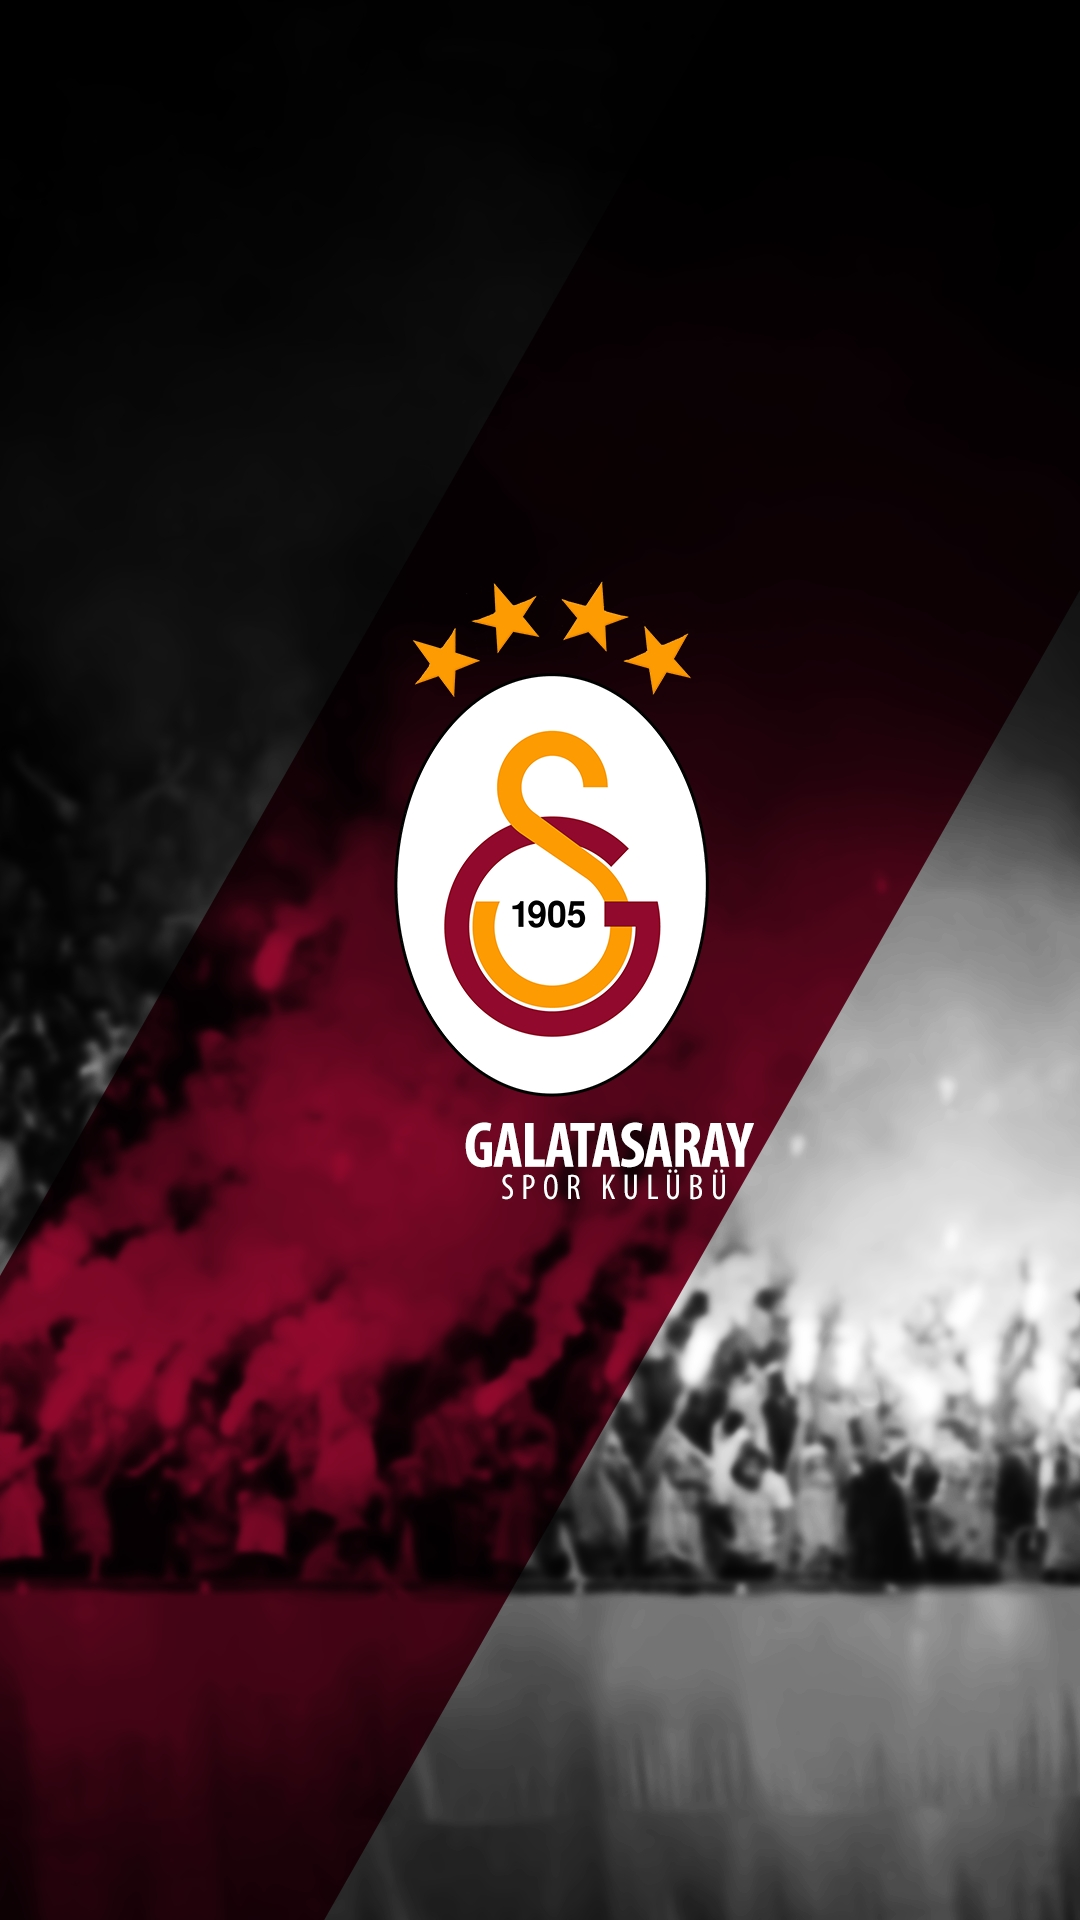 Galatasaray Wallpaper 70 images in Collection Page 2 1080x1920